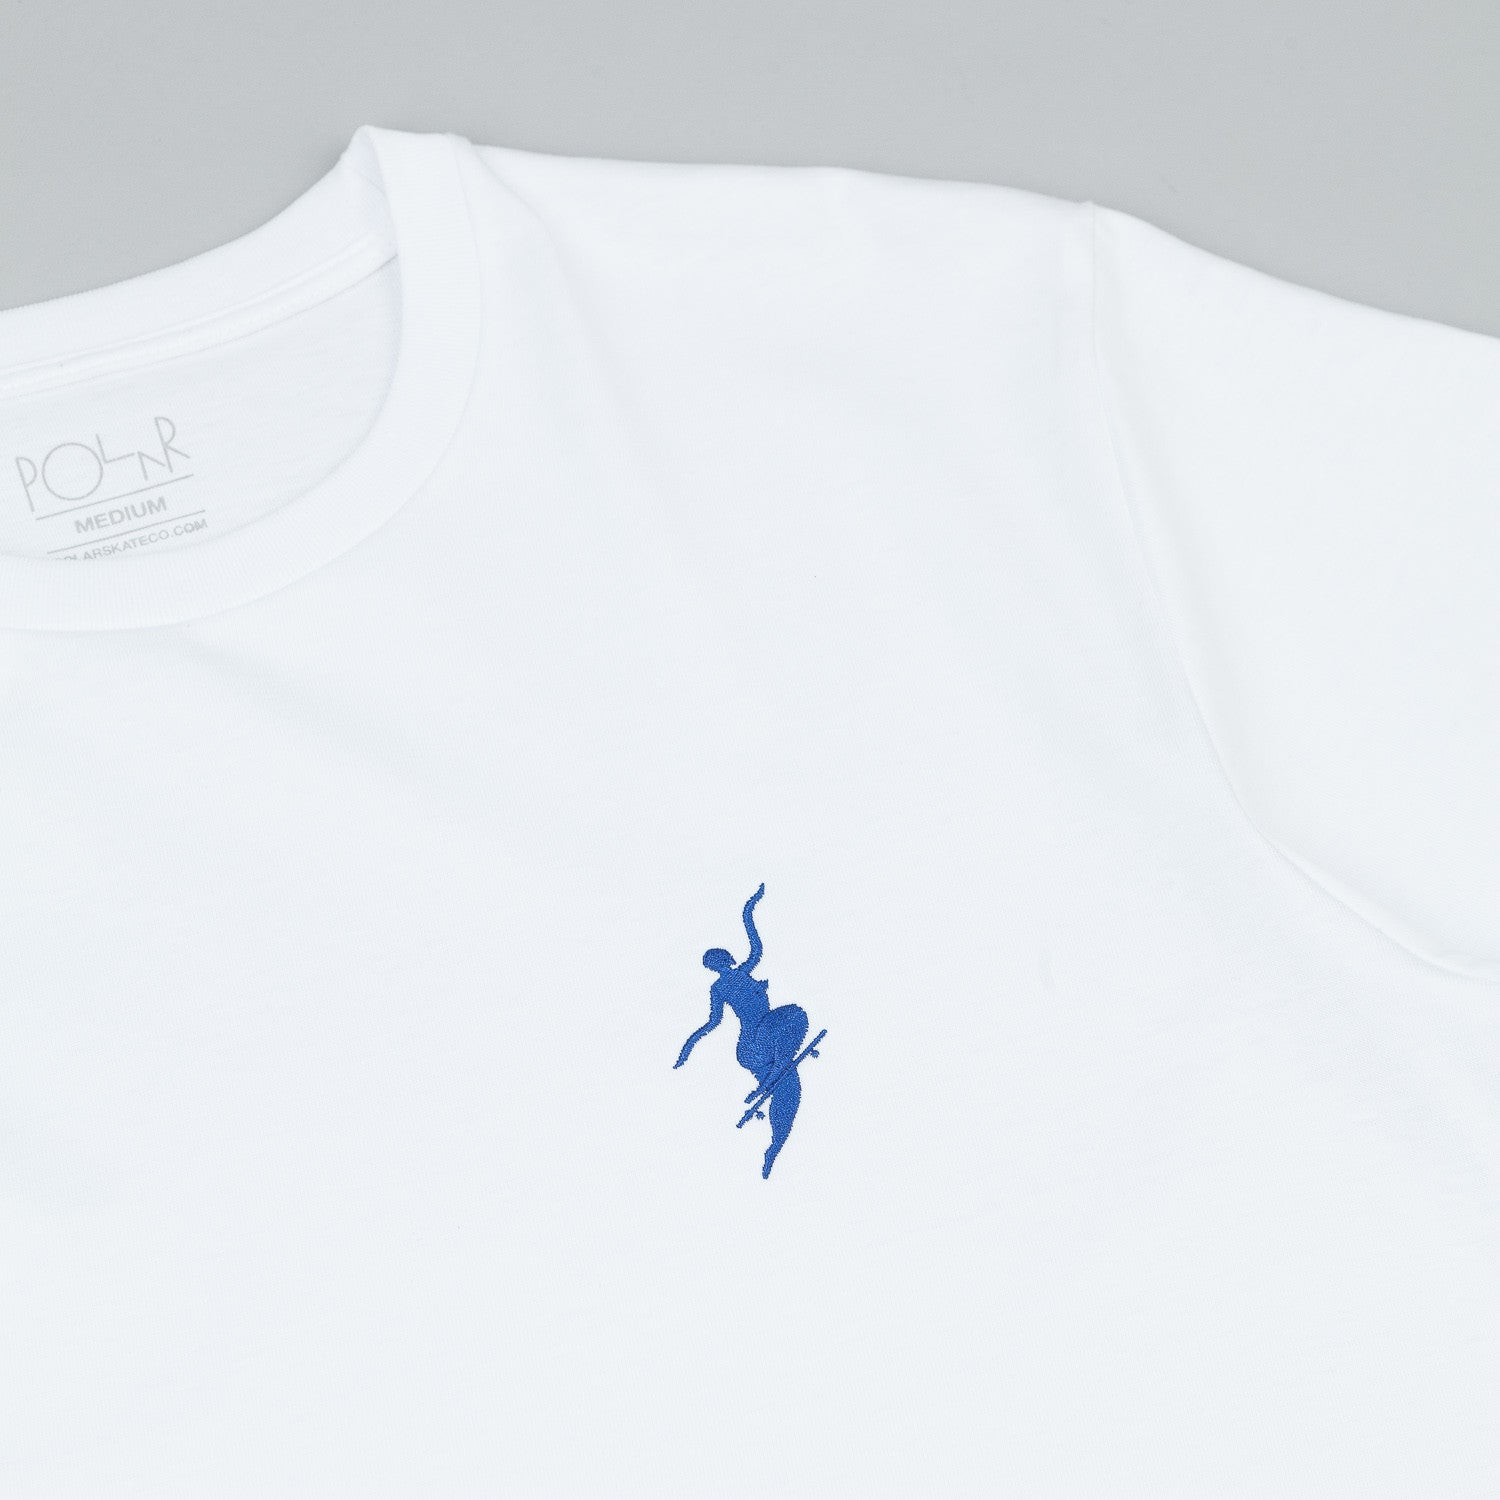 Polar No Comply T-Shirt - White / Navy